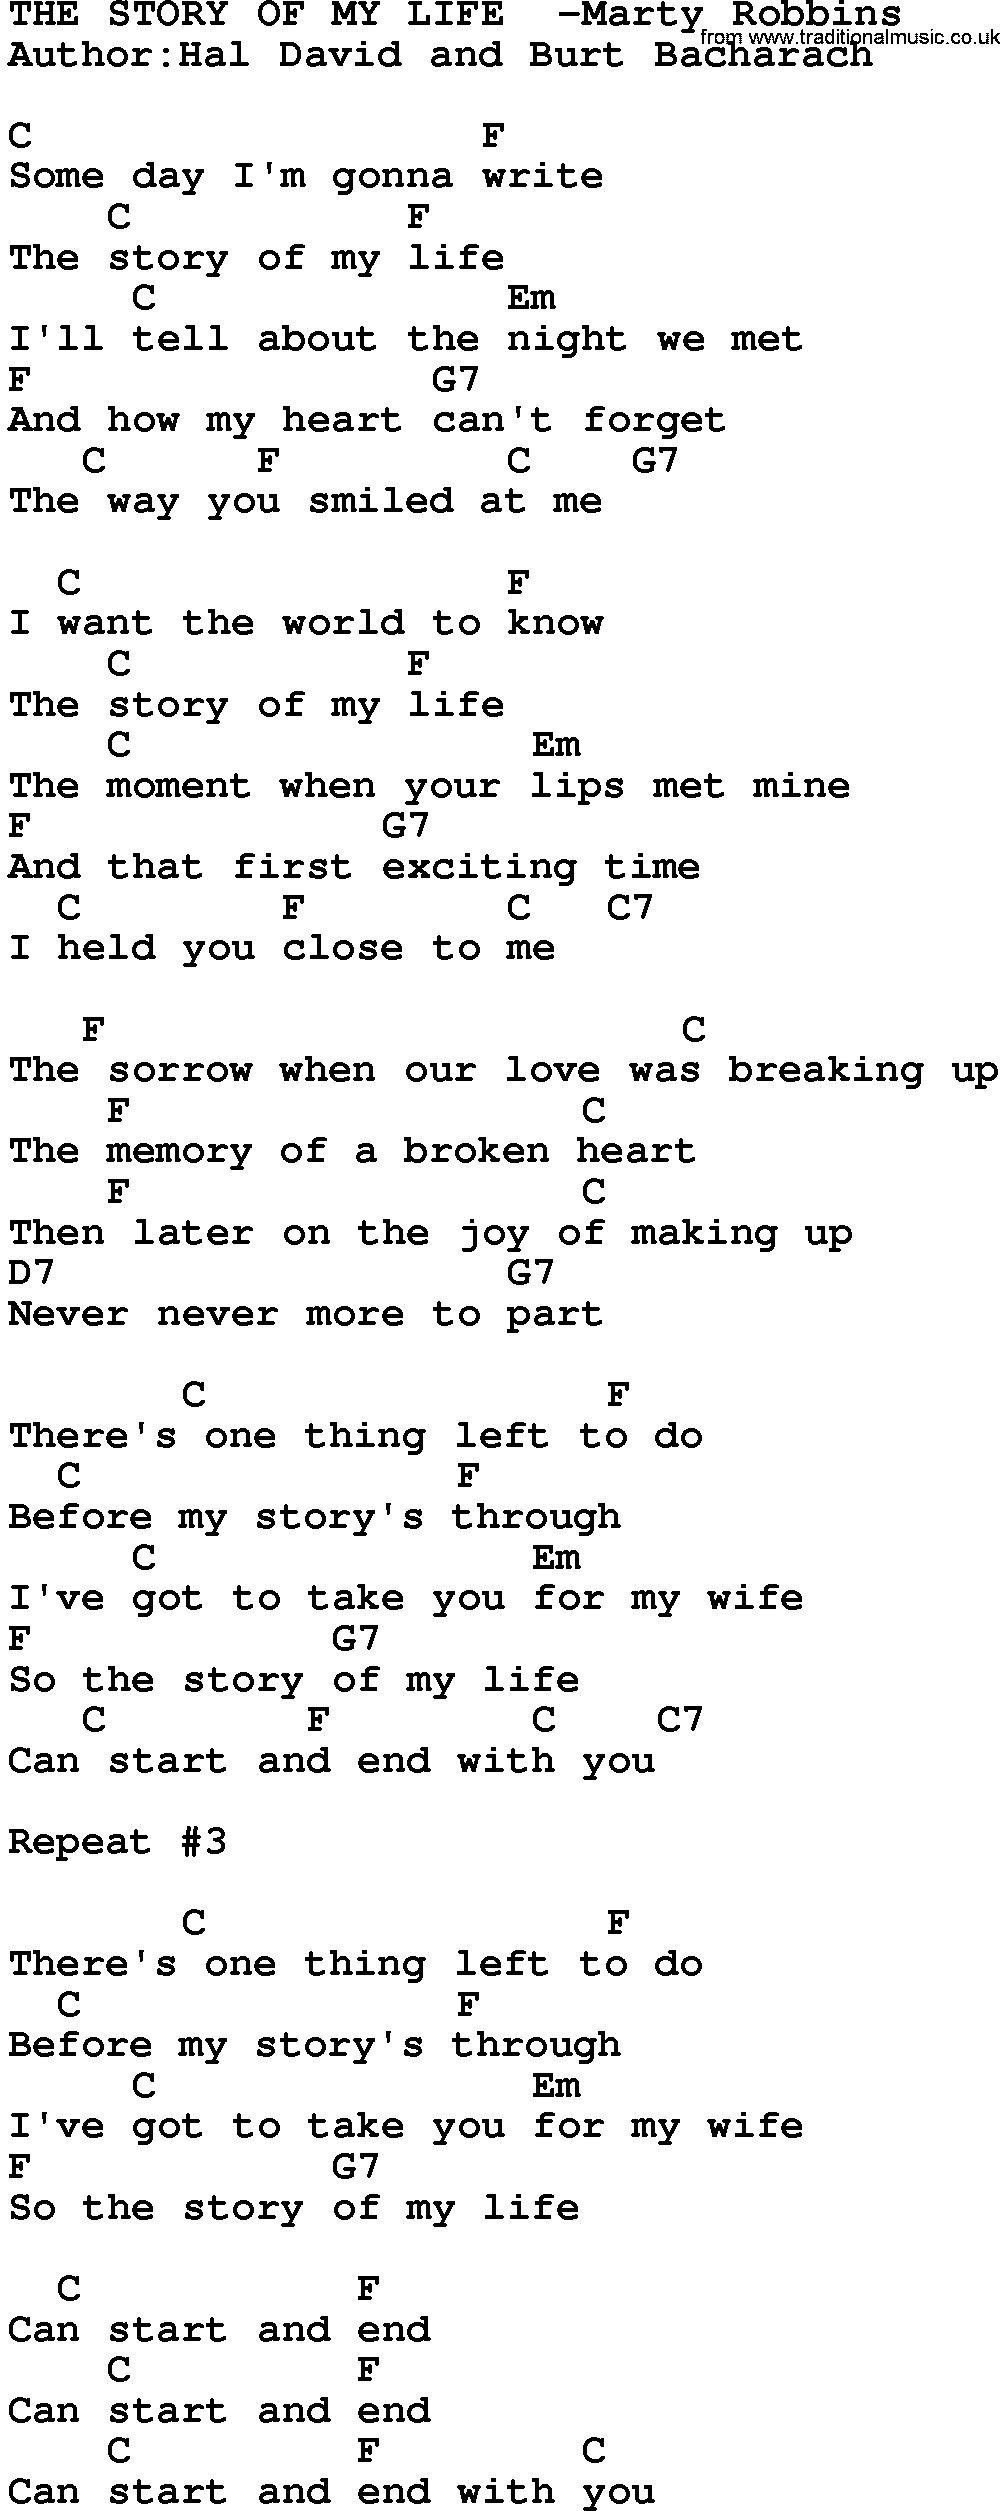 The story guitar chords